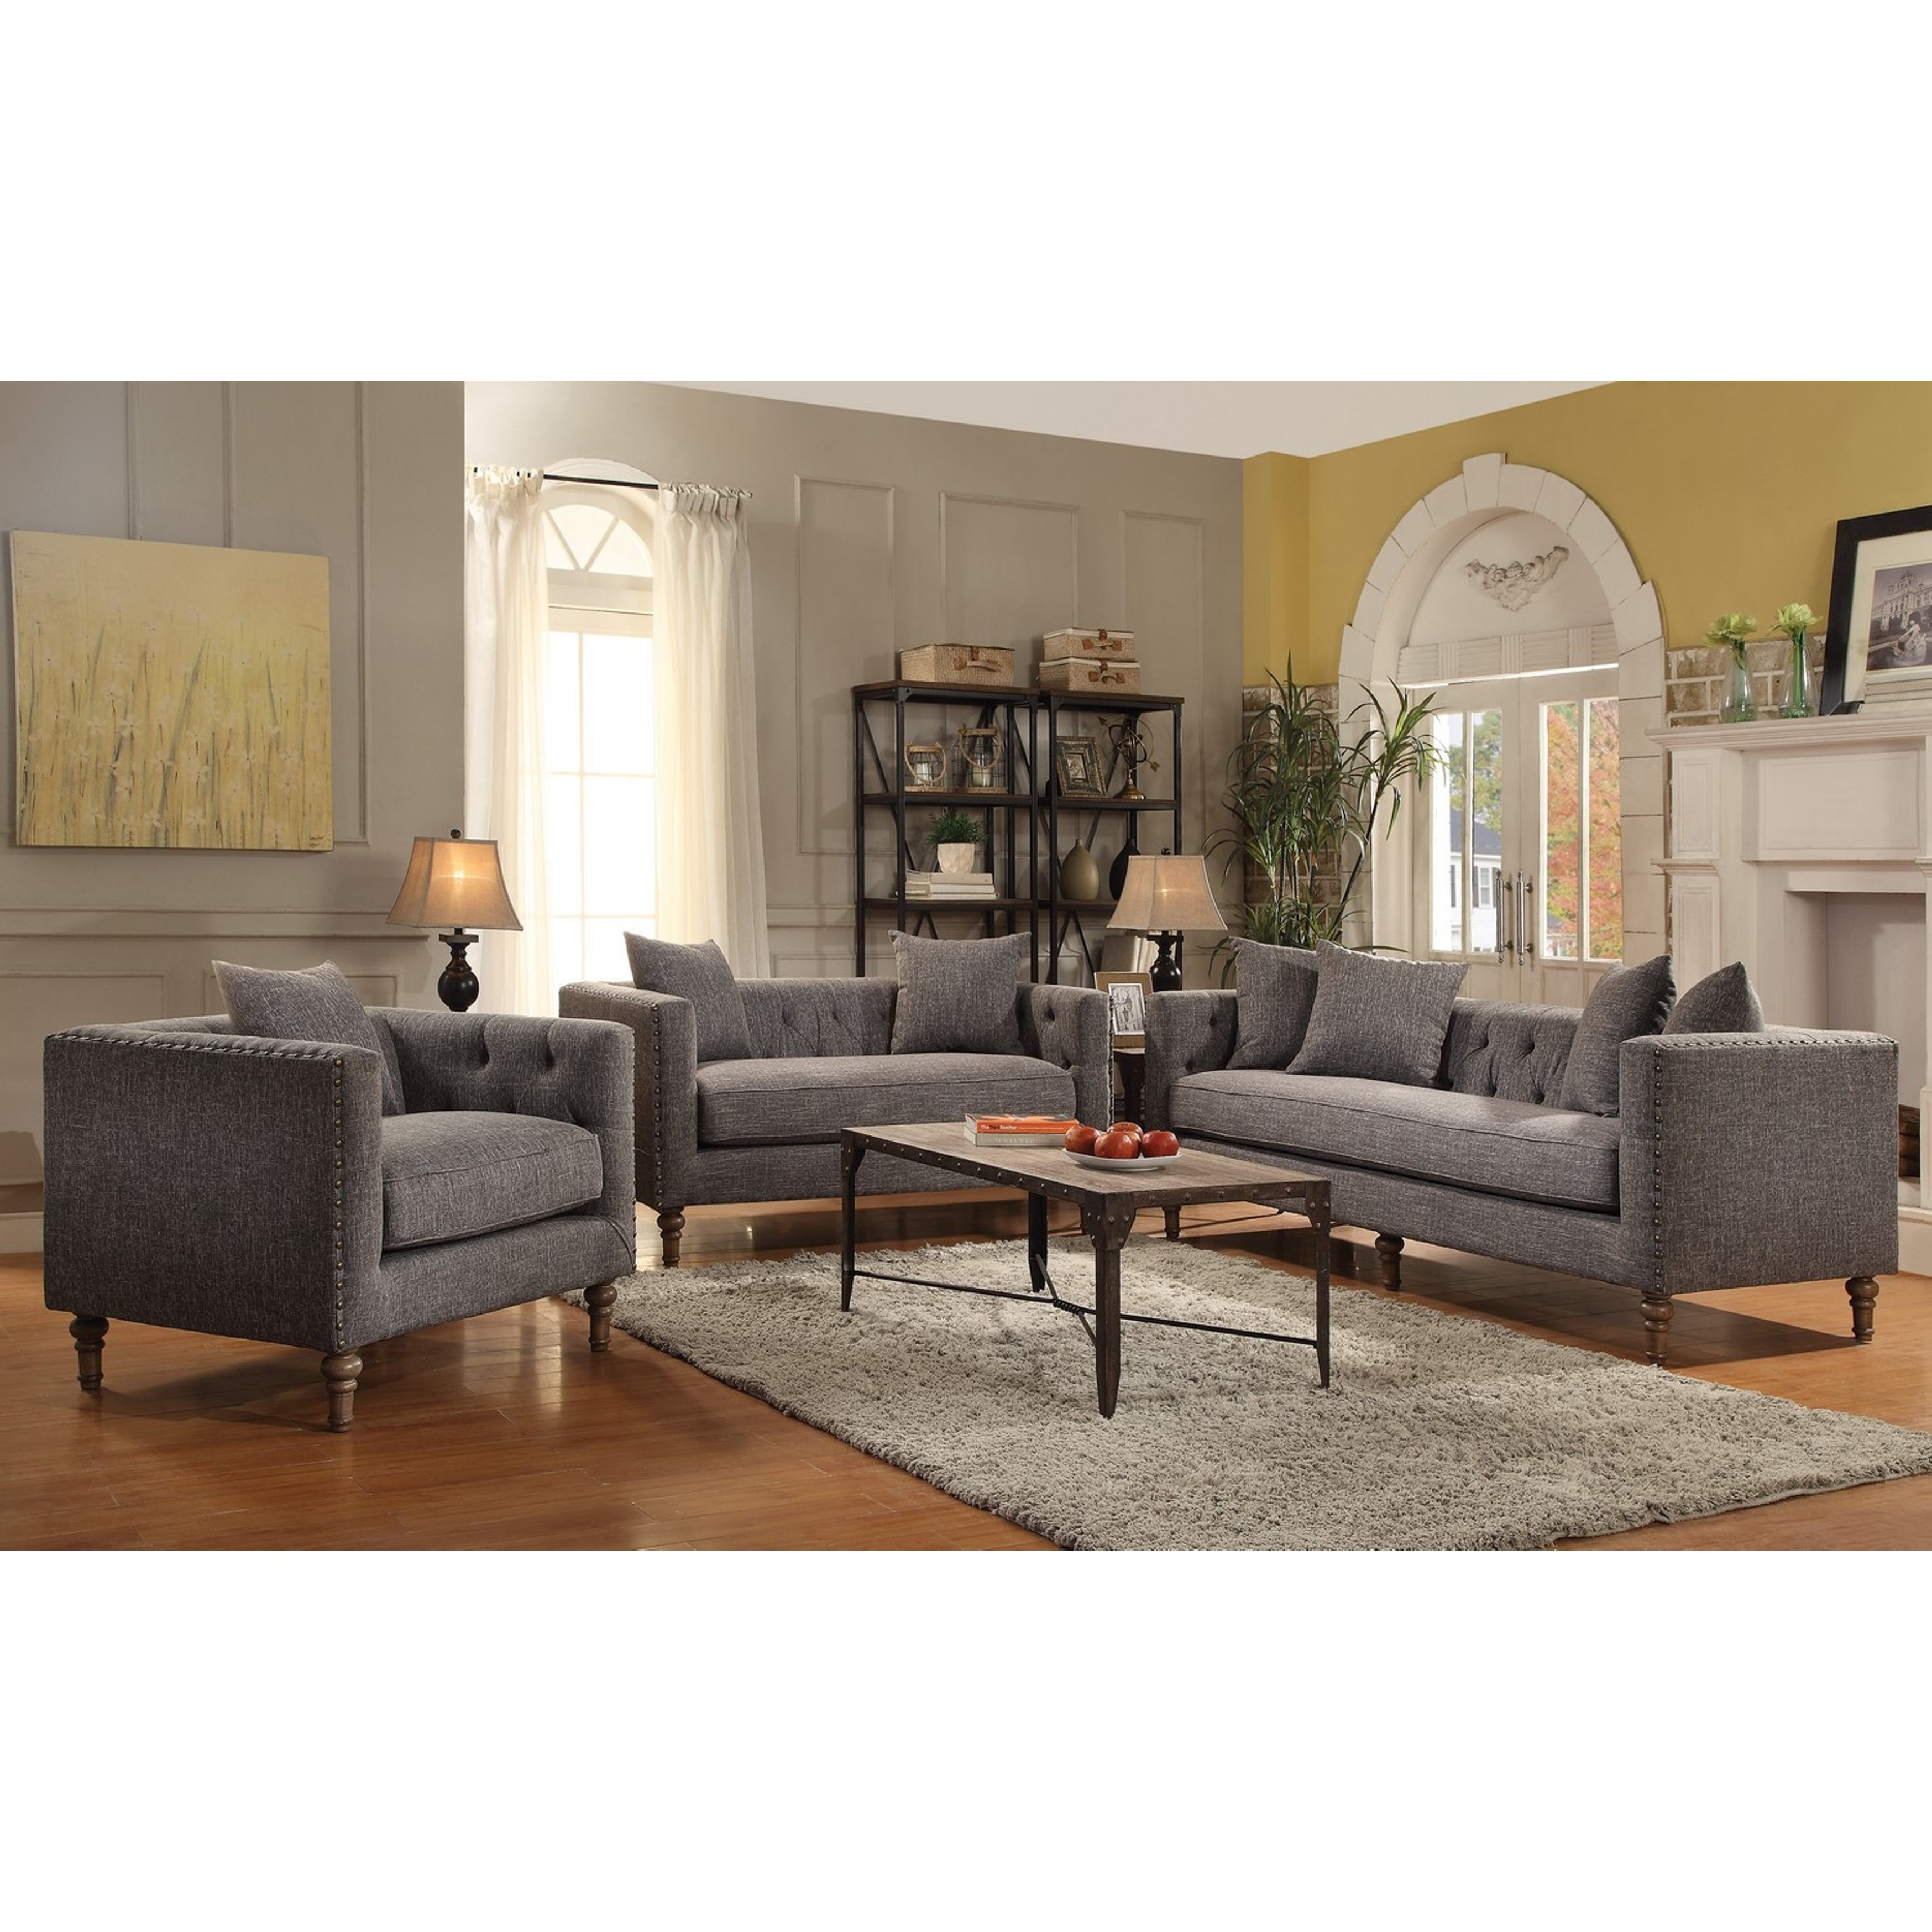 Sofa For Small Living Room Exquisite Traditional Tufted Tuxedo Back Design Living Room Sofa Collection